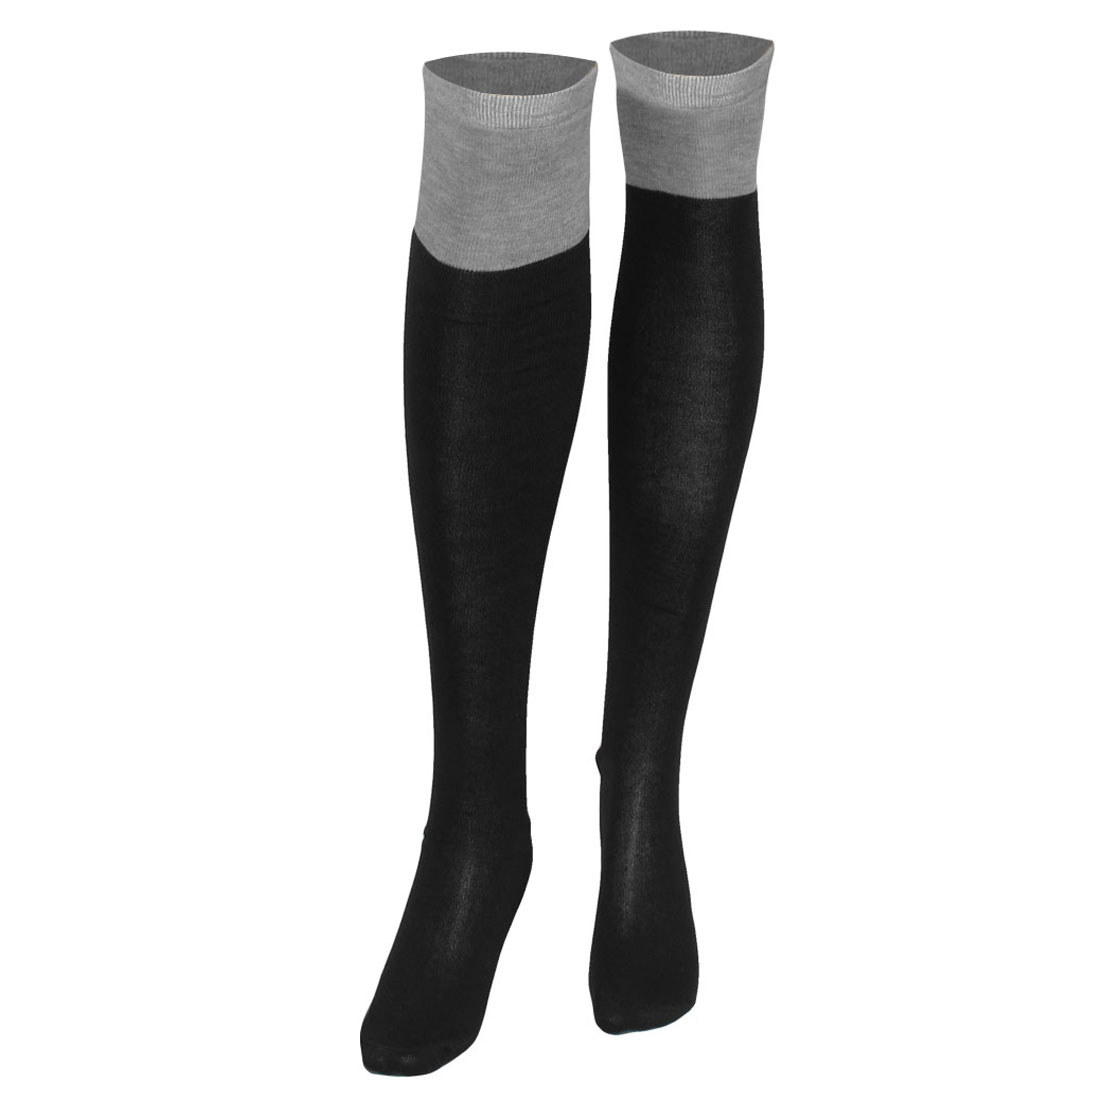 Women Light Gray Color Contrast Stretchy Knee High Socks Stockings